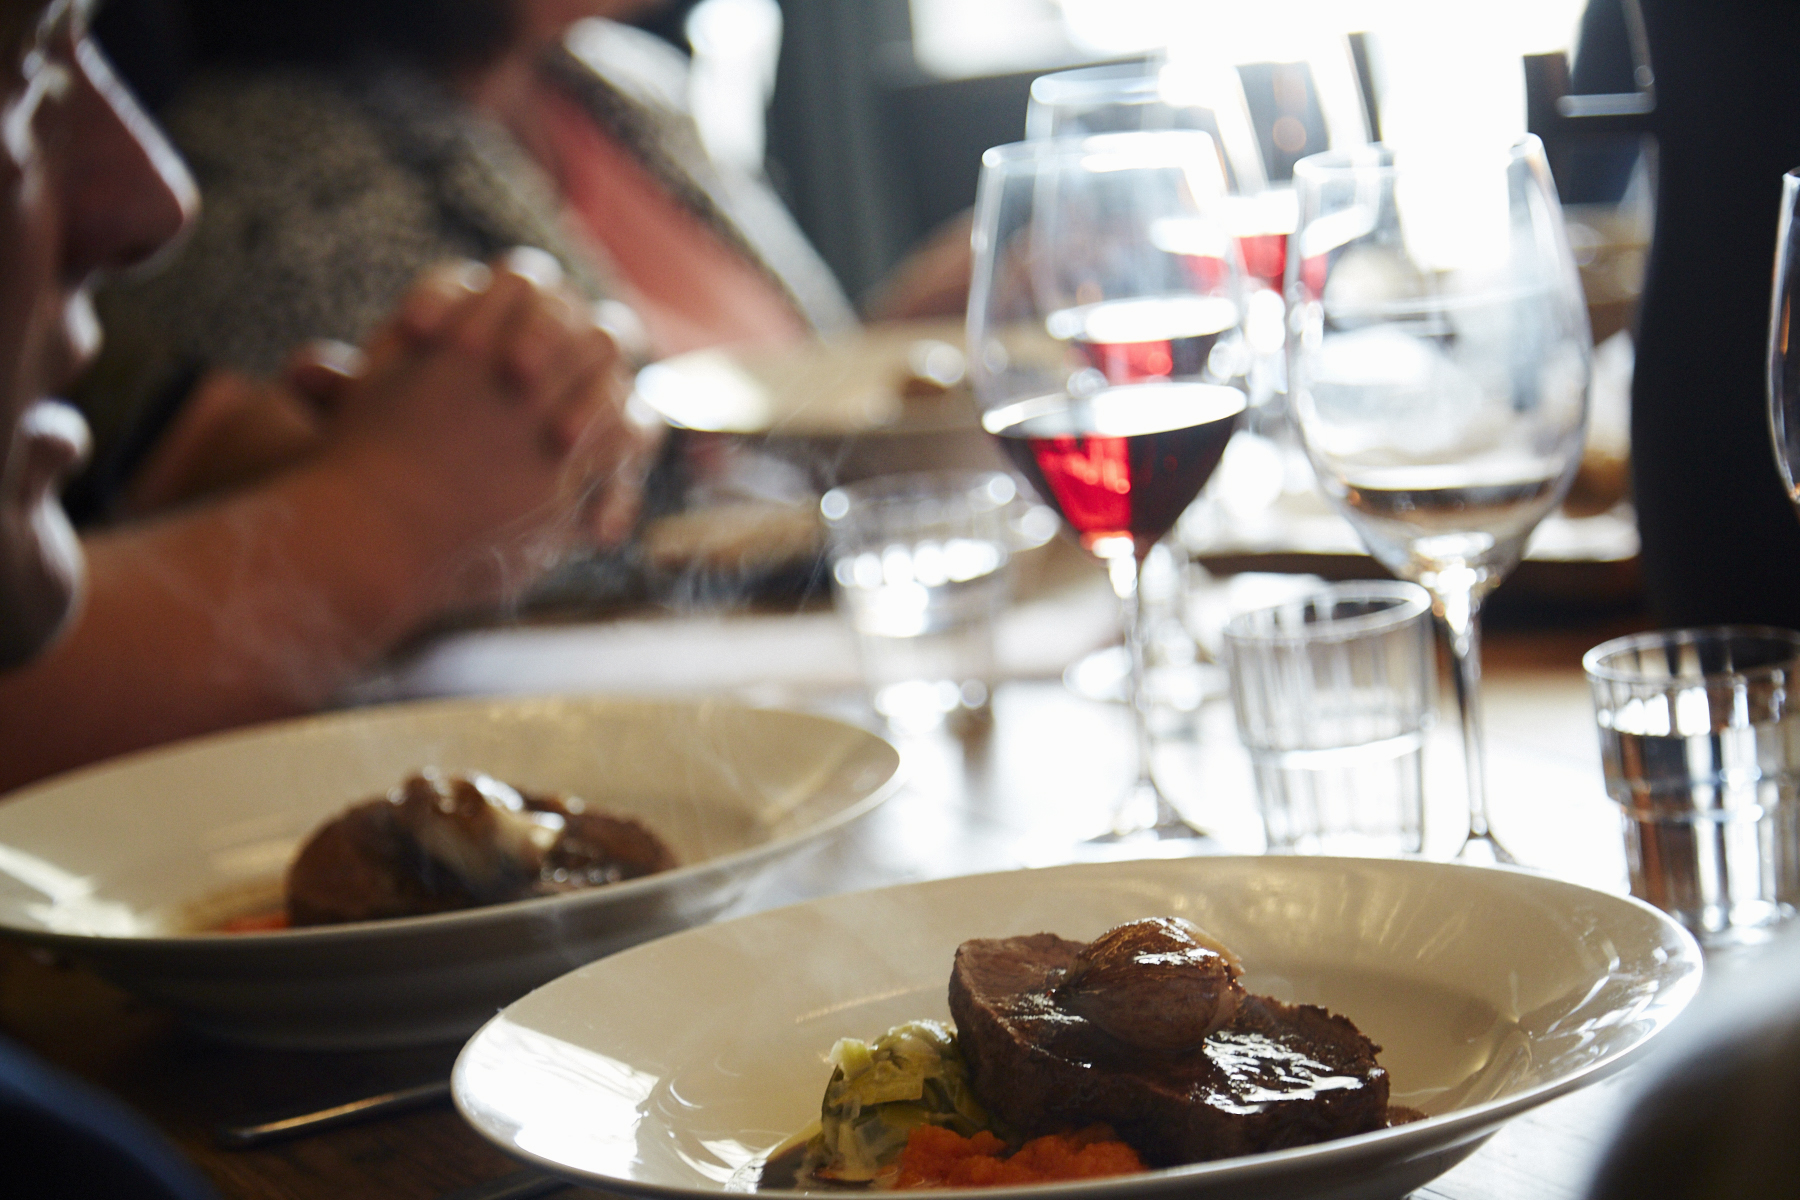 Tasmanian beef is outstanding, enjoy with a glass of Pinot Noir